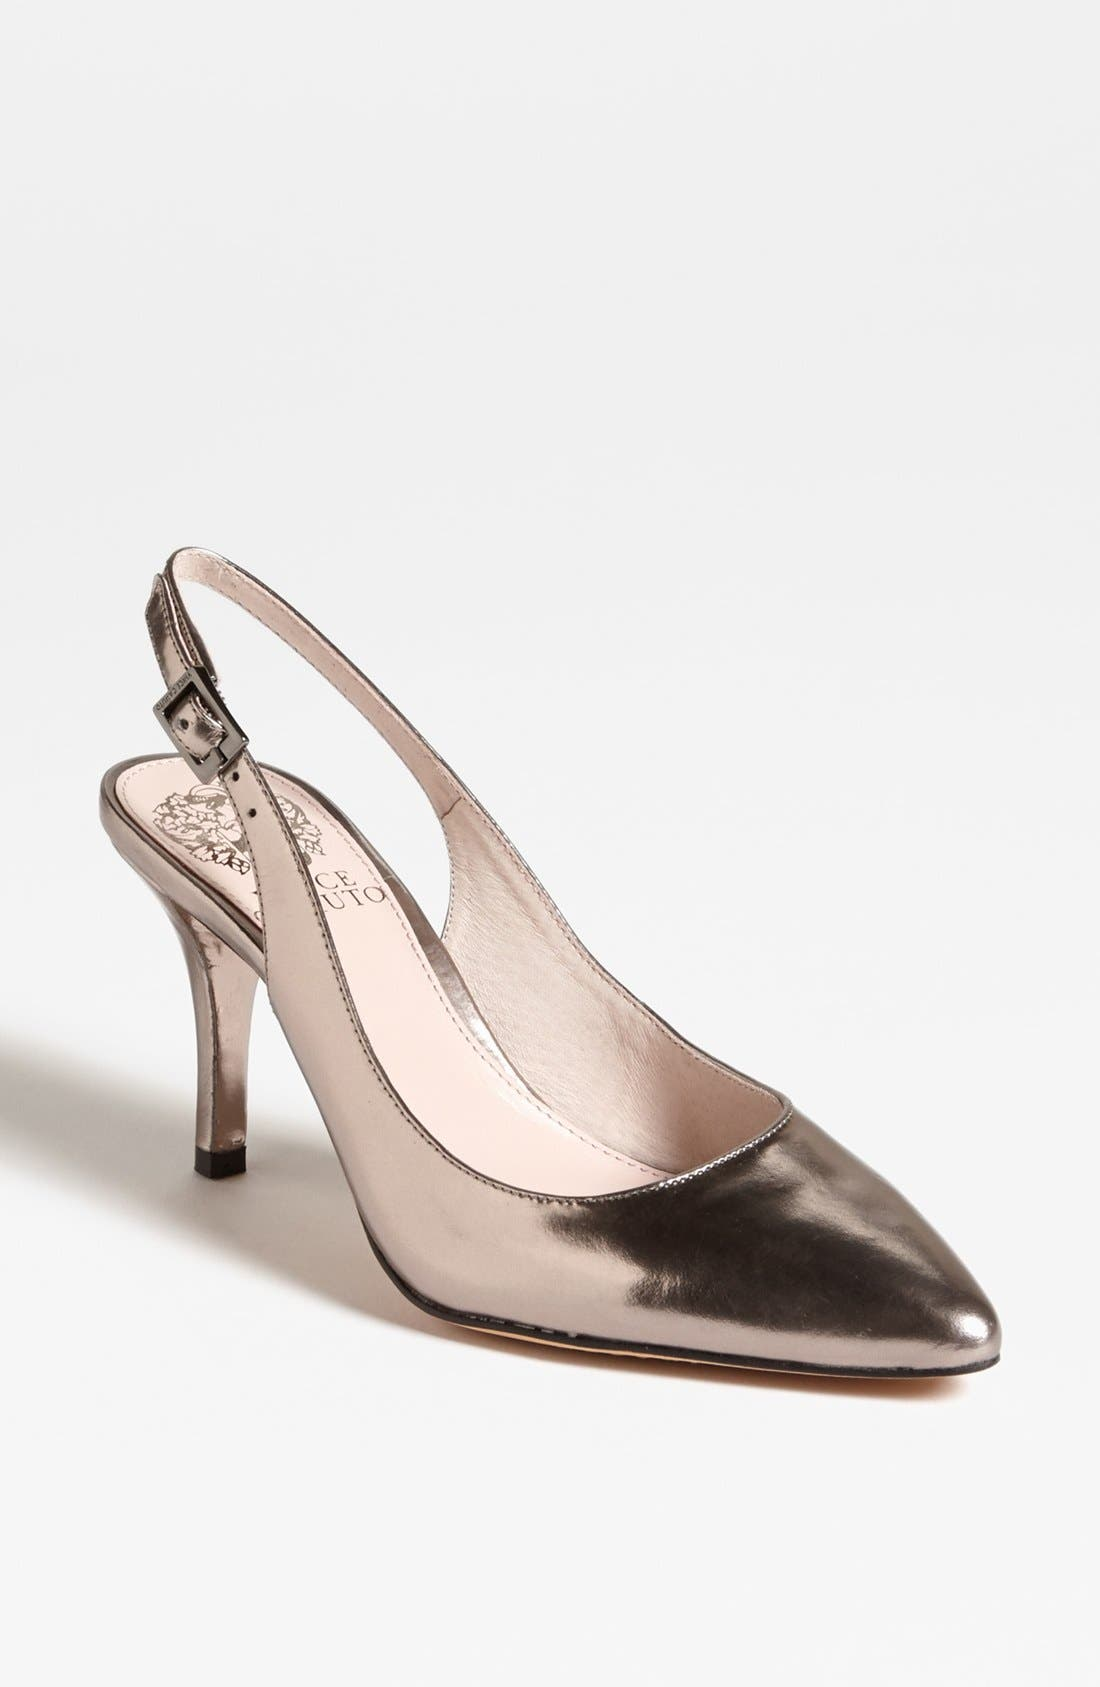 Alternate Image 1 Selected - Vince Camuto 'Stefania' Pump